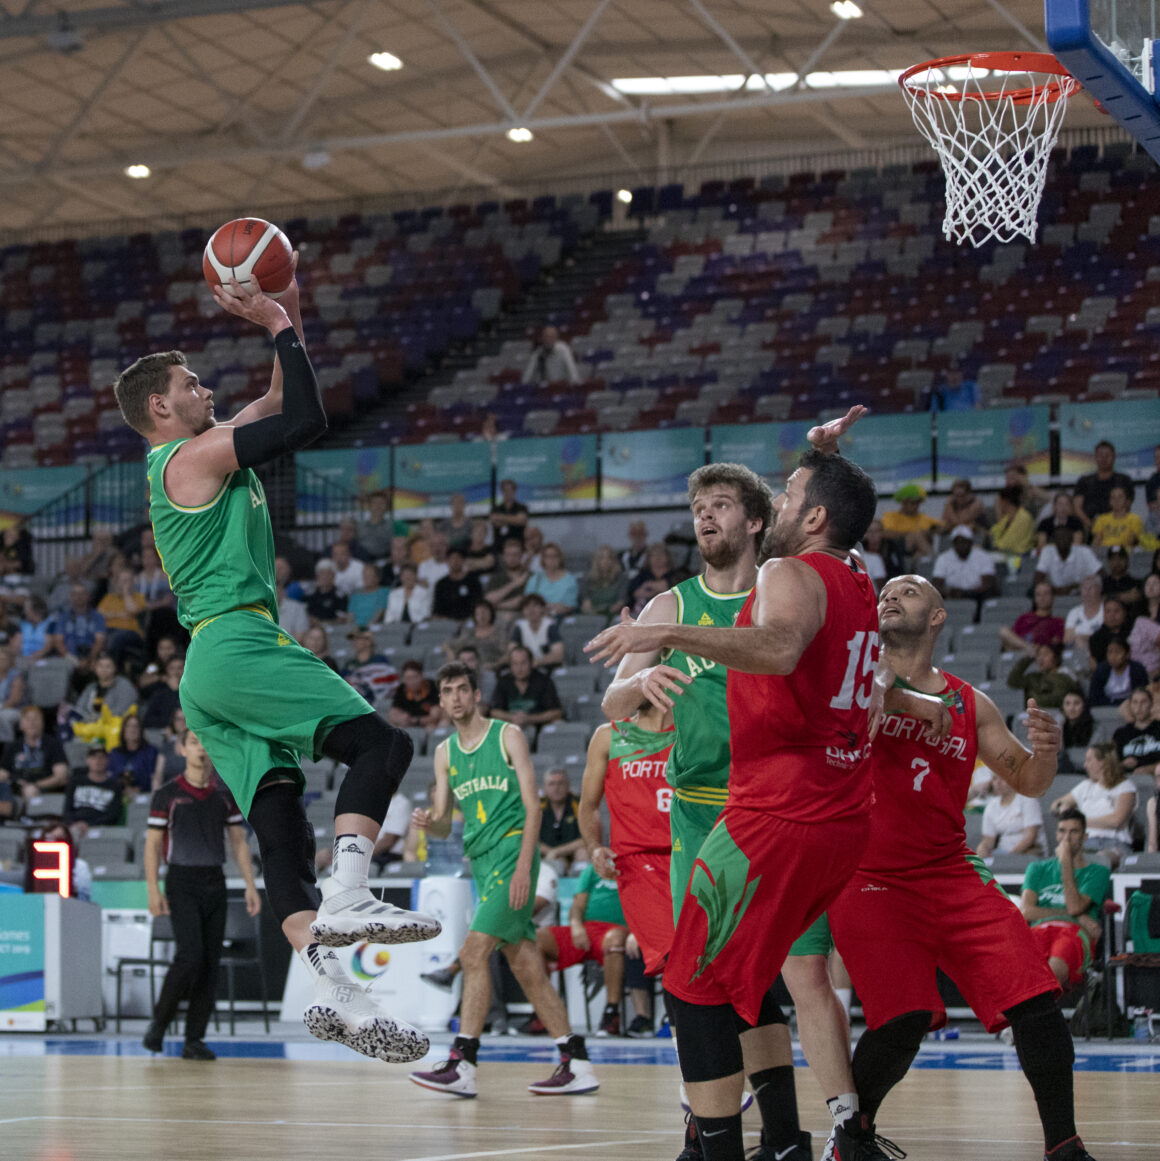 Bid process opens for 2021 World Basketball Championships